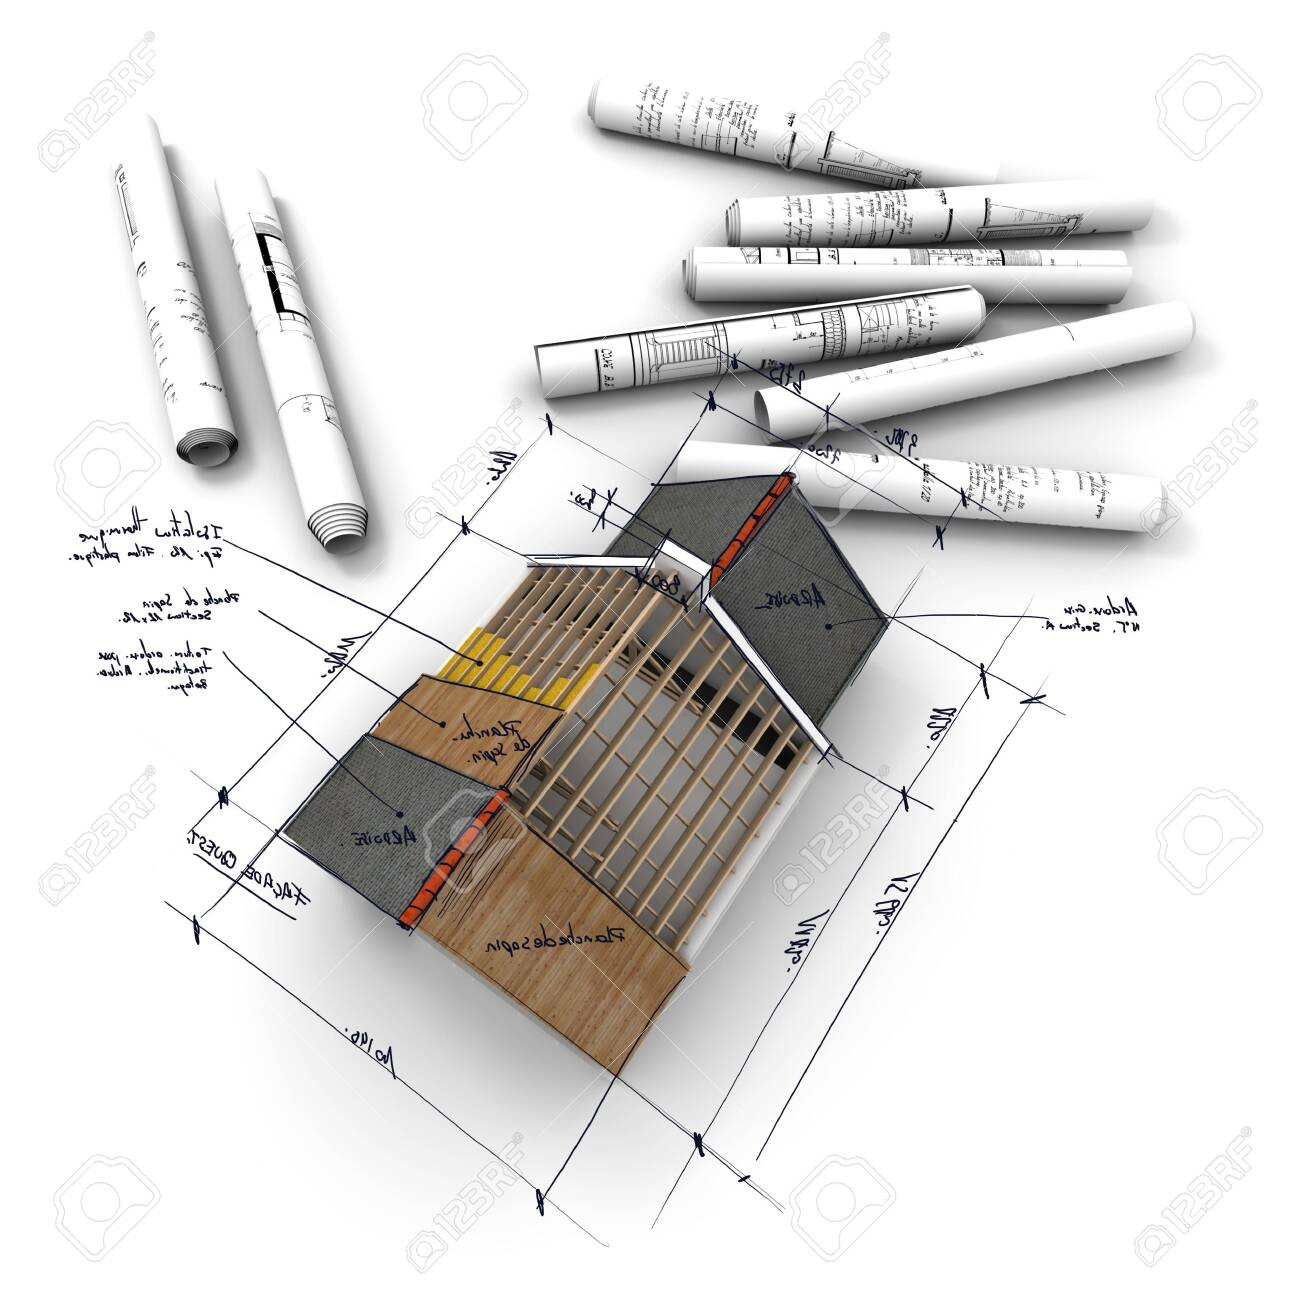 Modeling a home building roof roof drawing the layout of the house view from above. - 129914506